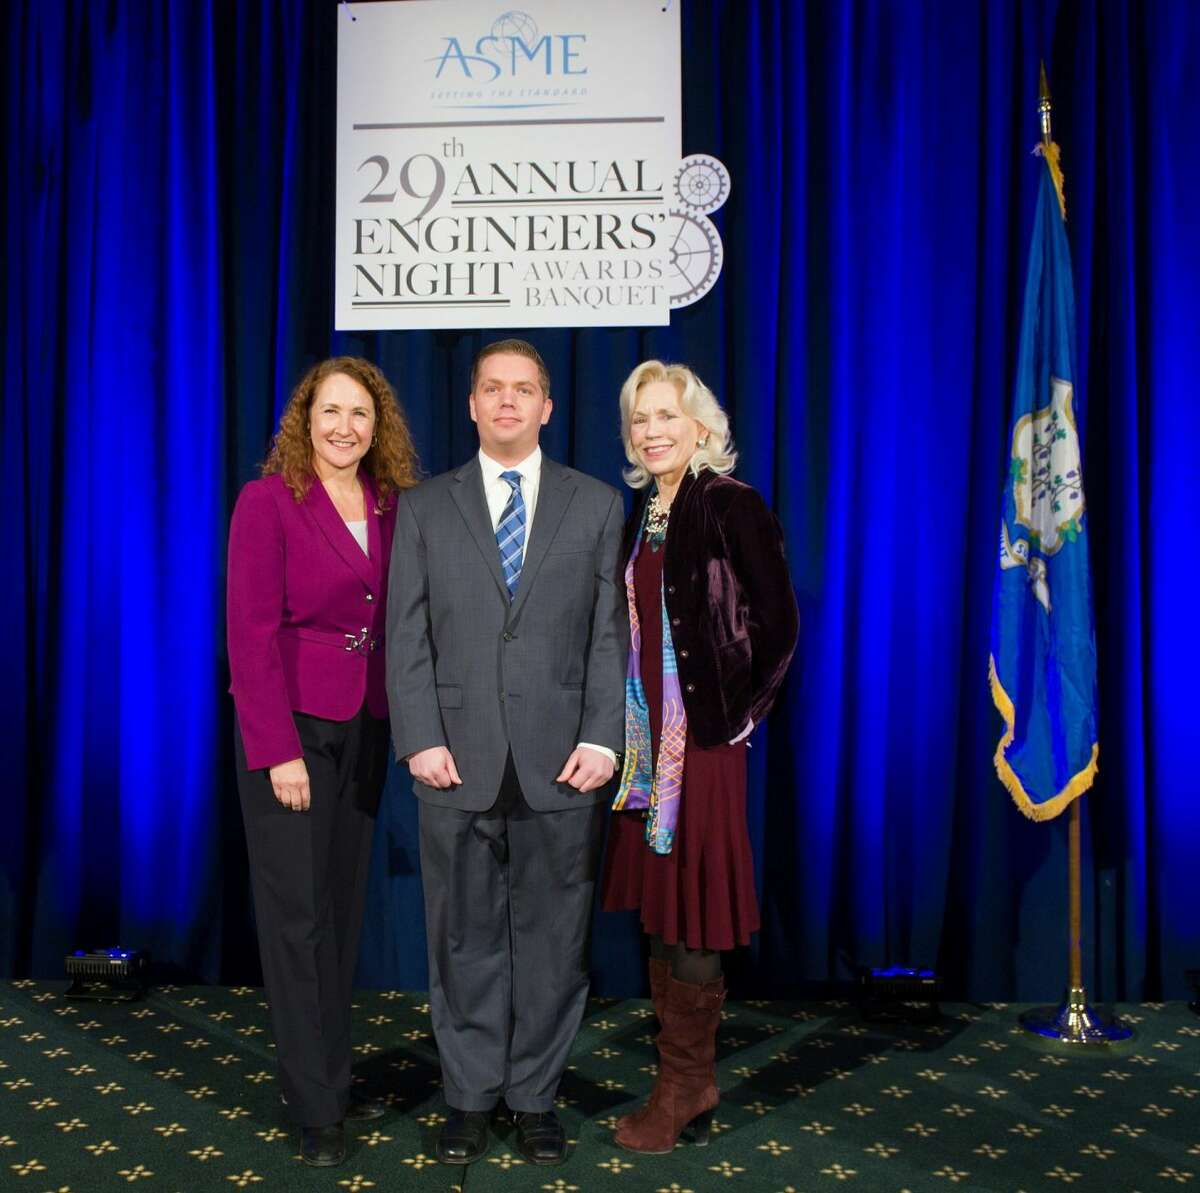 (from left to right) Elizabeth Esty,U.S.Representativefor the 5th District ofConnecticut, Aaron Danenberg,Engineers' Night Chairman and Lonnie Reed, State Representative, honored Connecticut's Distinguished Engineers at the 29thASMEAnnualEngineers' Night Awards Banquet at the Society Room in Hartford on February 19th. Congresswoman Esty served as the keynote speaker and Rep. Reed closed out the ceremony.